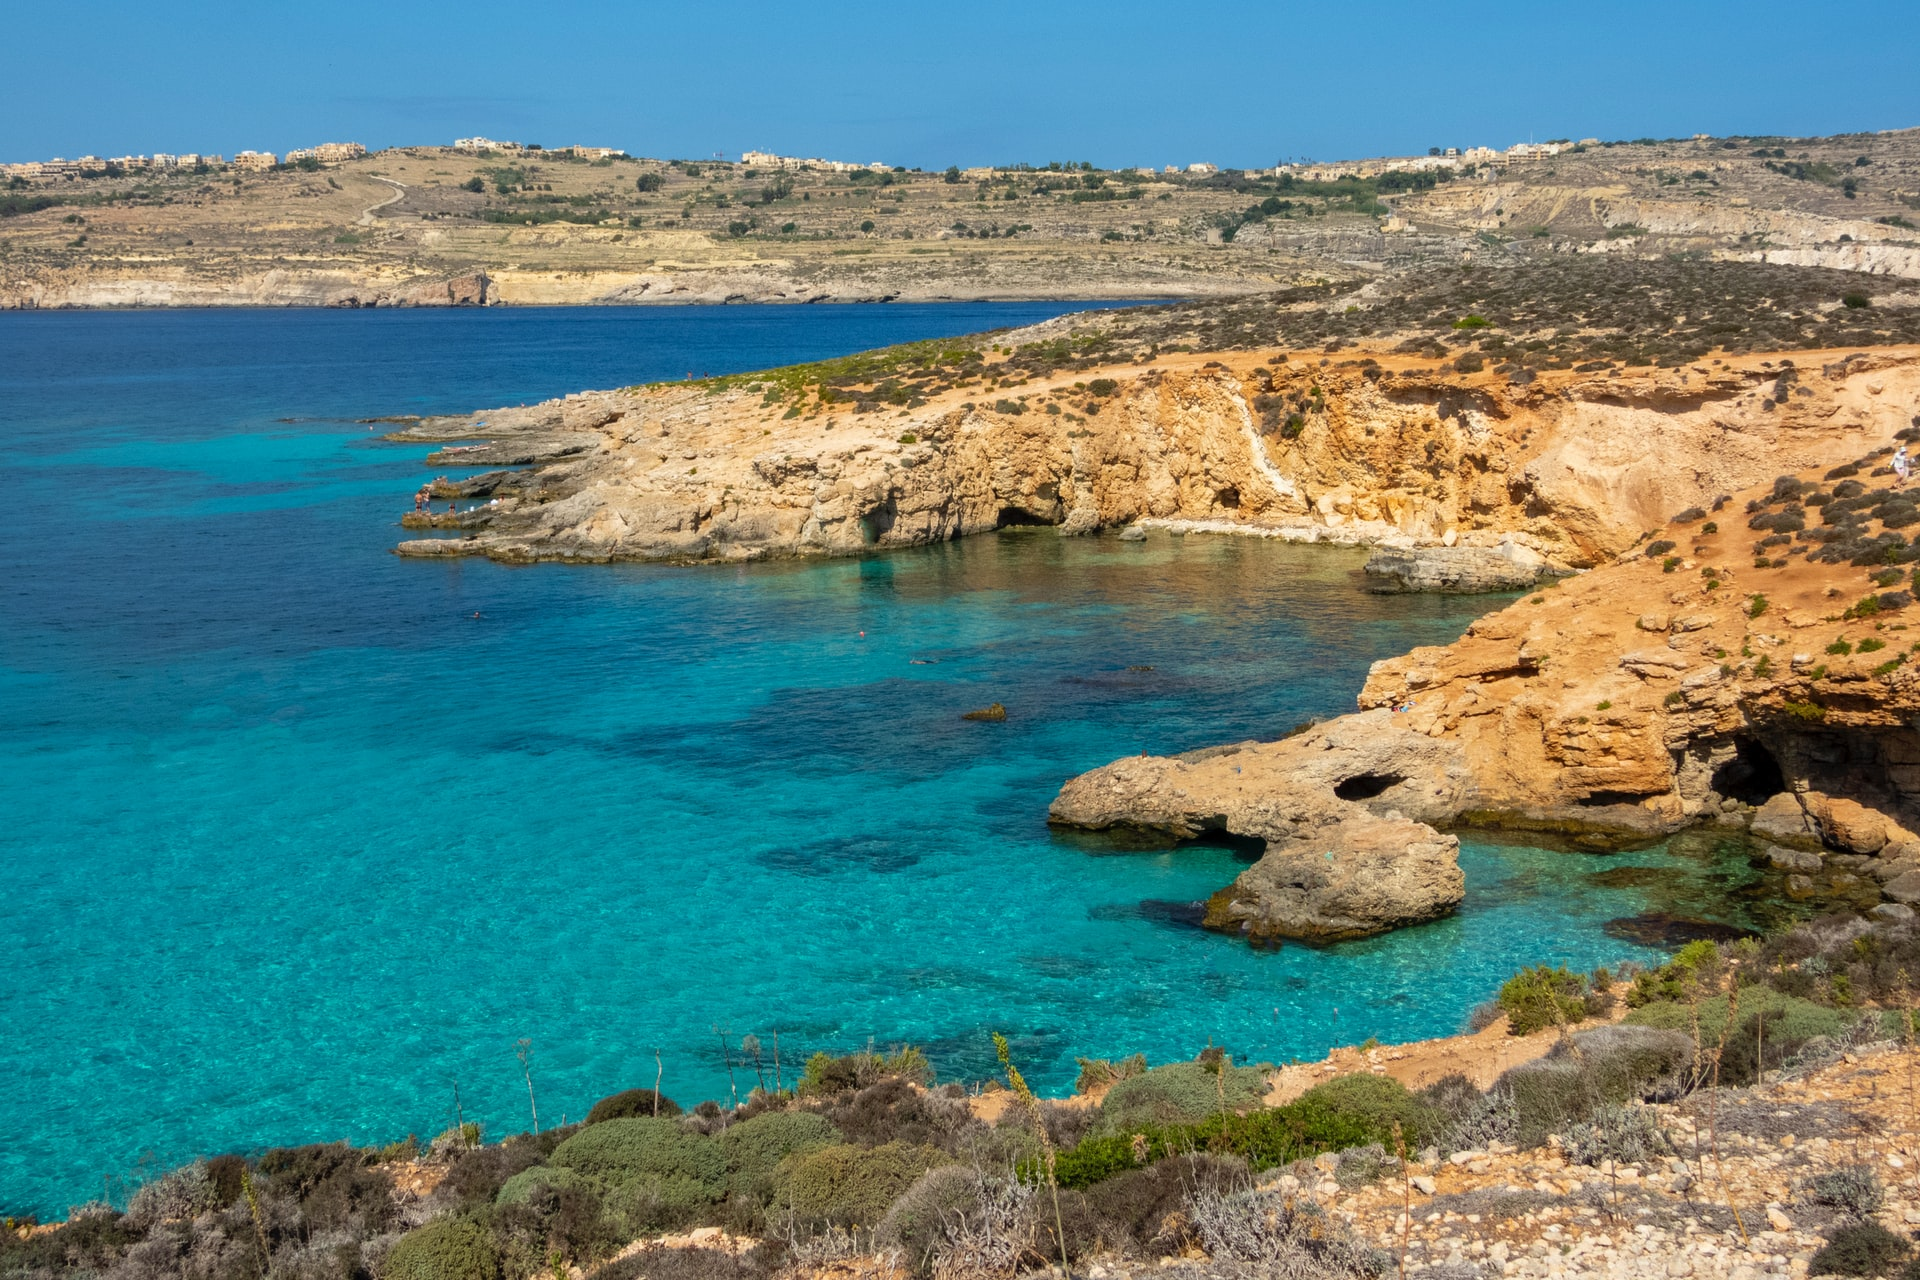 Aerial view of the Blue Lagoon in Malta